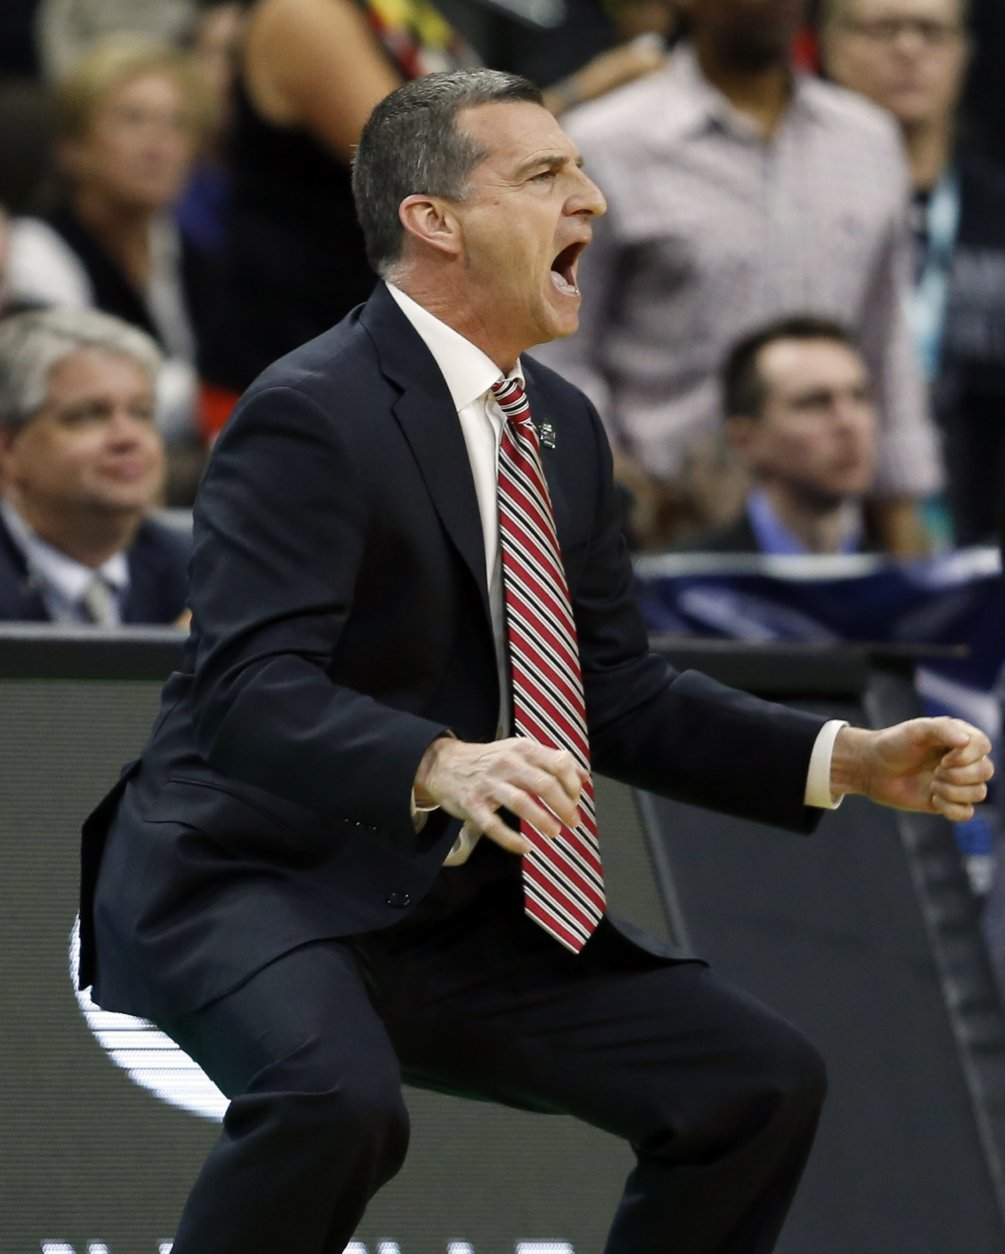 Maryland head coach Mark Turgeon reacts as he watches his team on the court against Belmont during the first half of a first round men's college basketball game in the NCAA Tournament in Jacksonville, Fla., Thursday, March 21, 2019. (AP Photo/Stephen B. Morton)